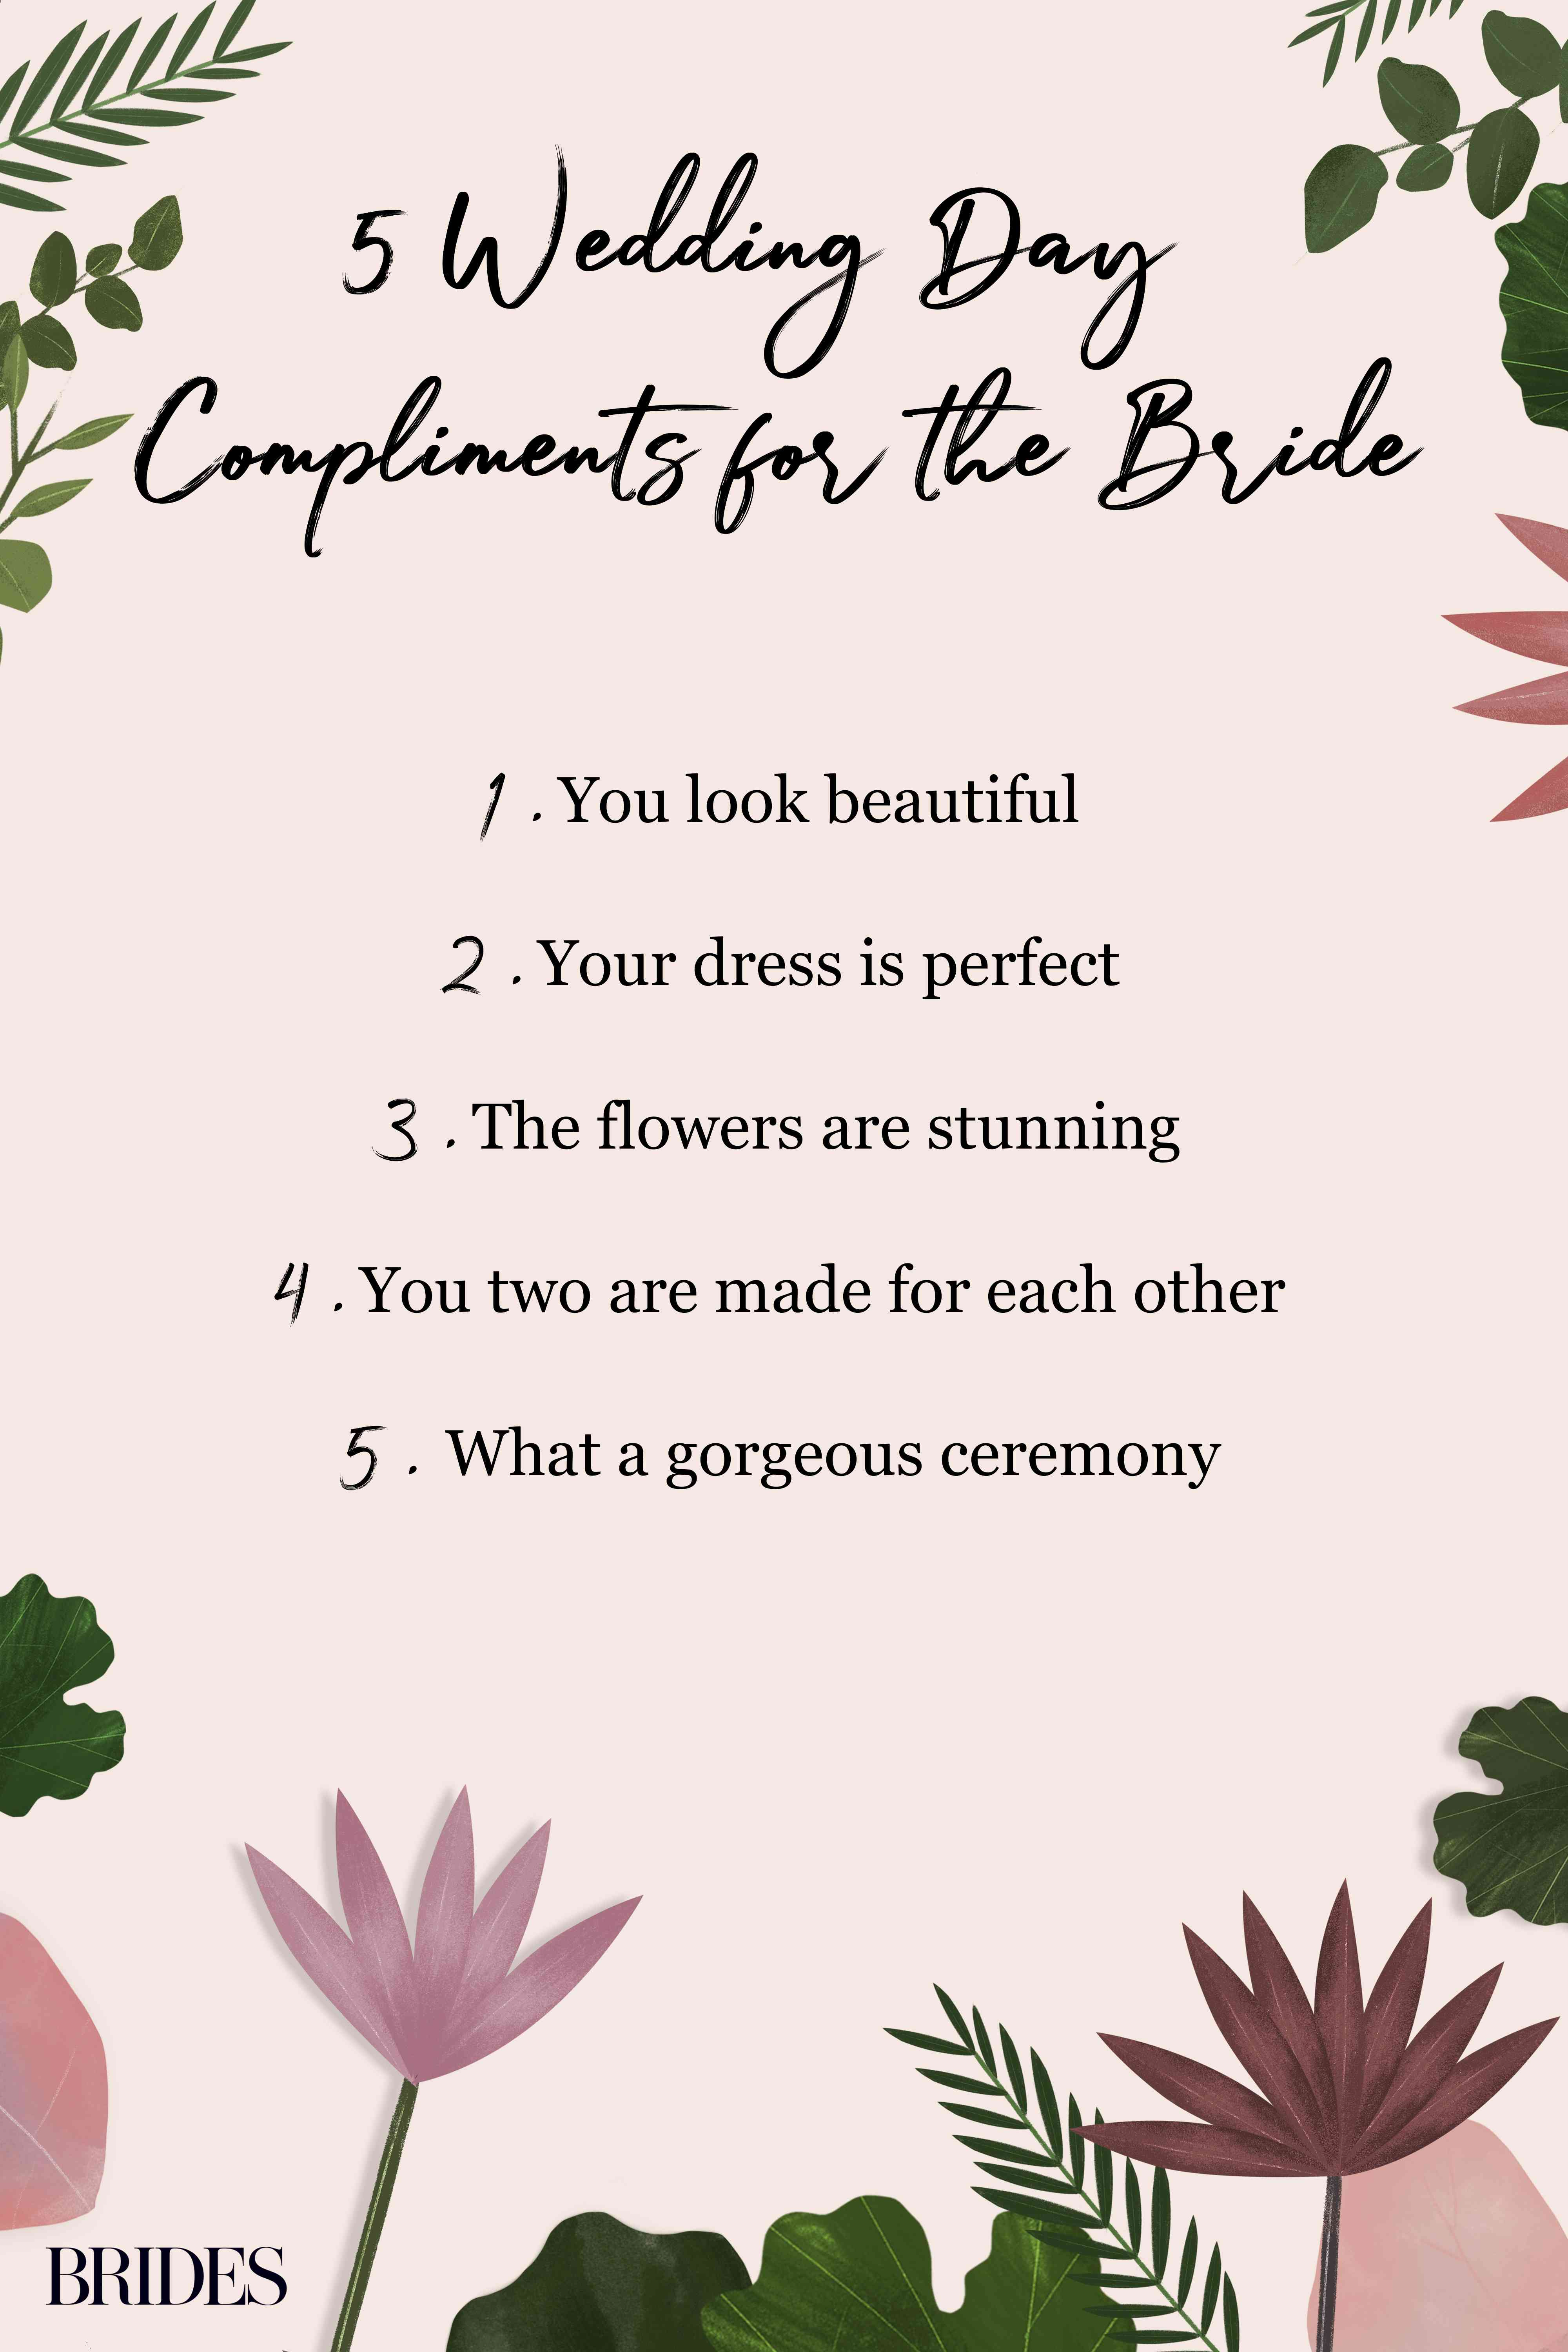 wedding day compliments